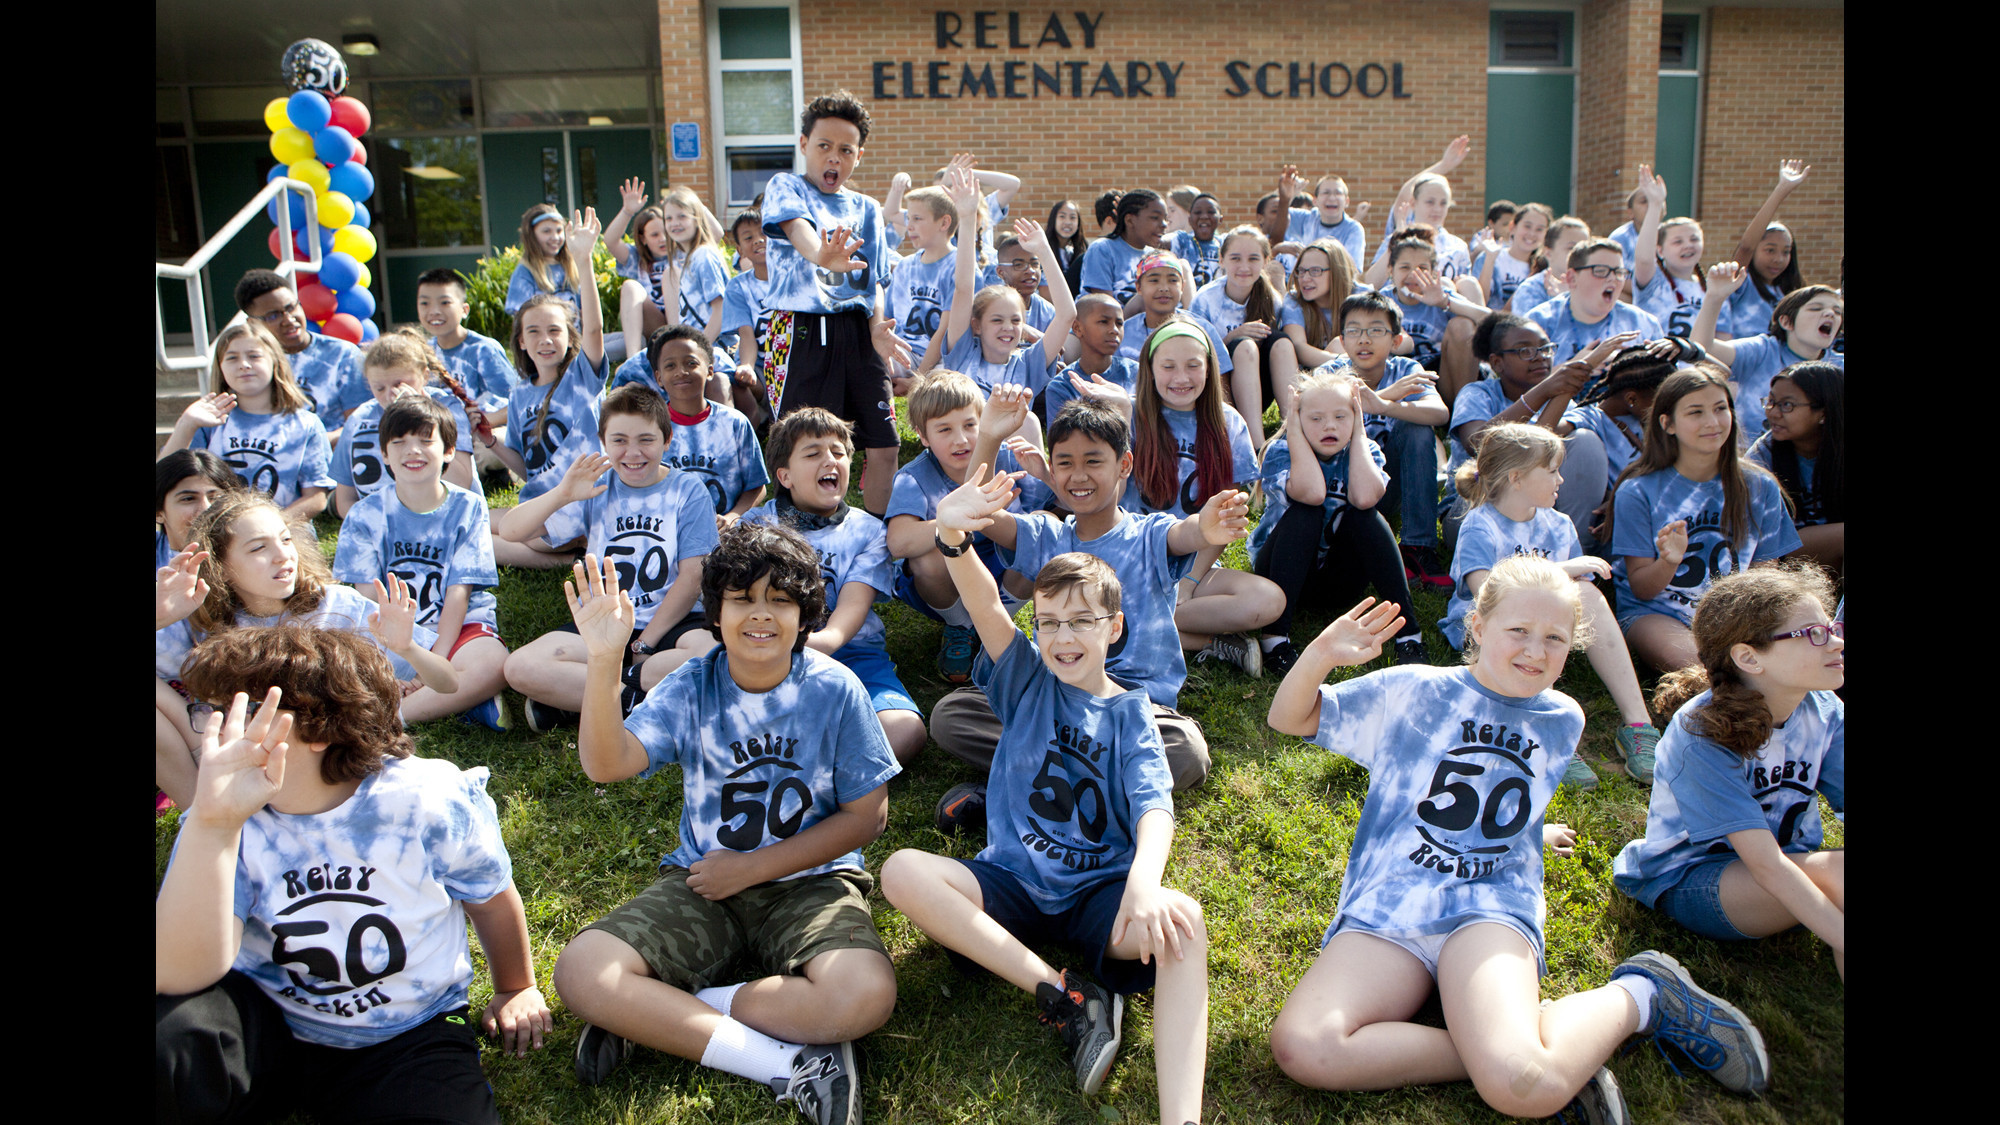 With Final Year Ahead Relay Elementary Begins Celebration